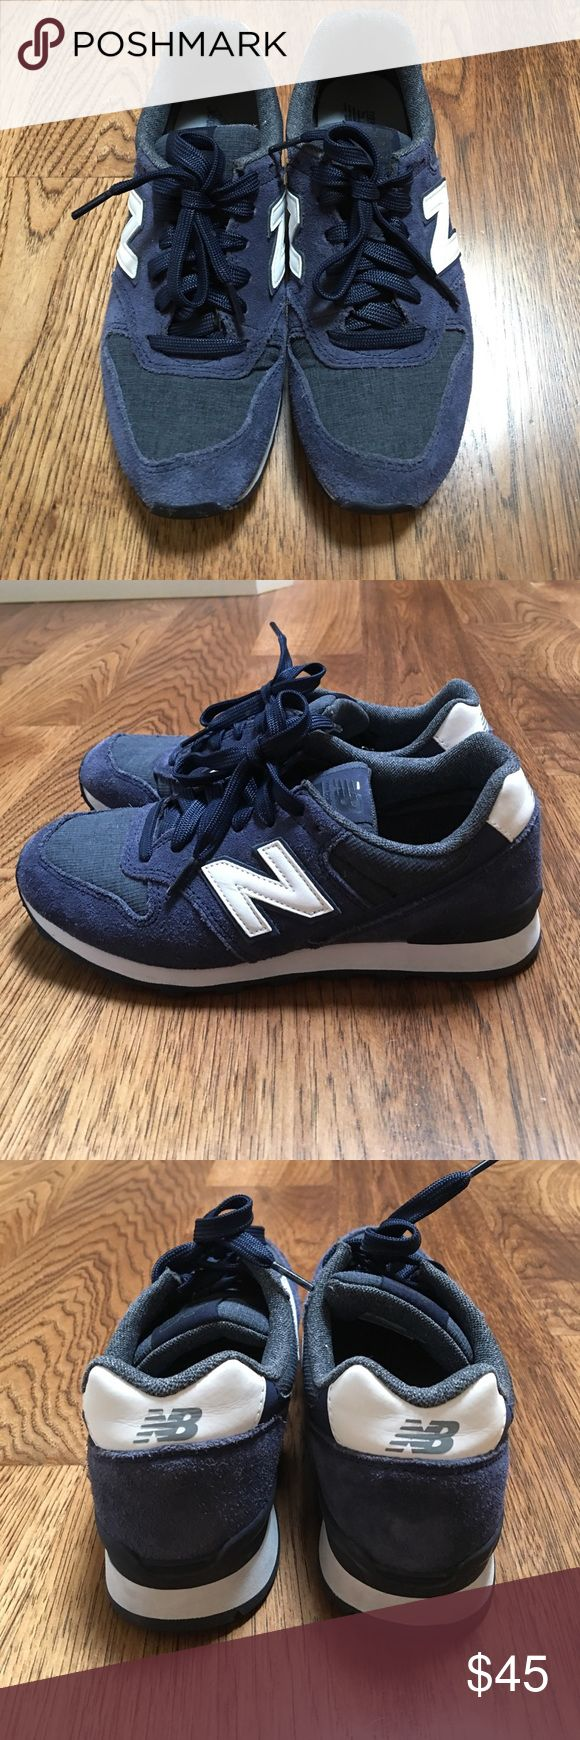 Navy blue New Balance Sneakers 696